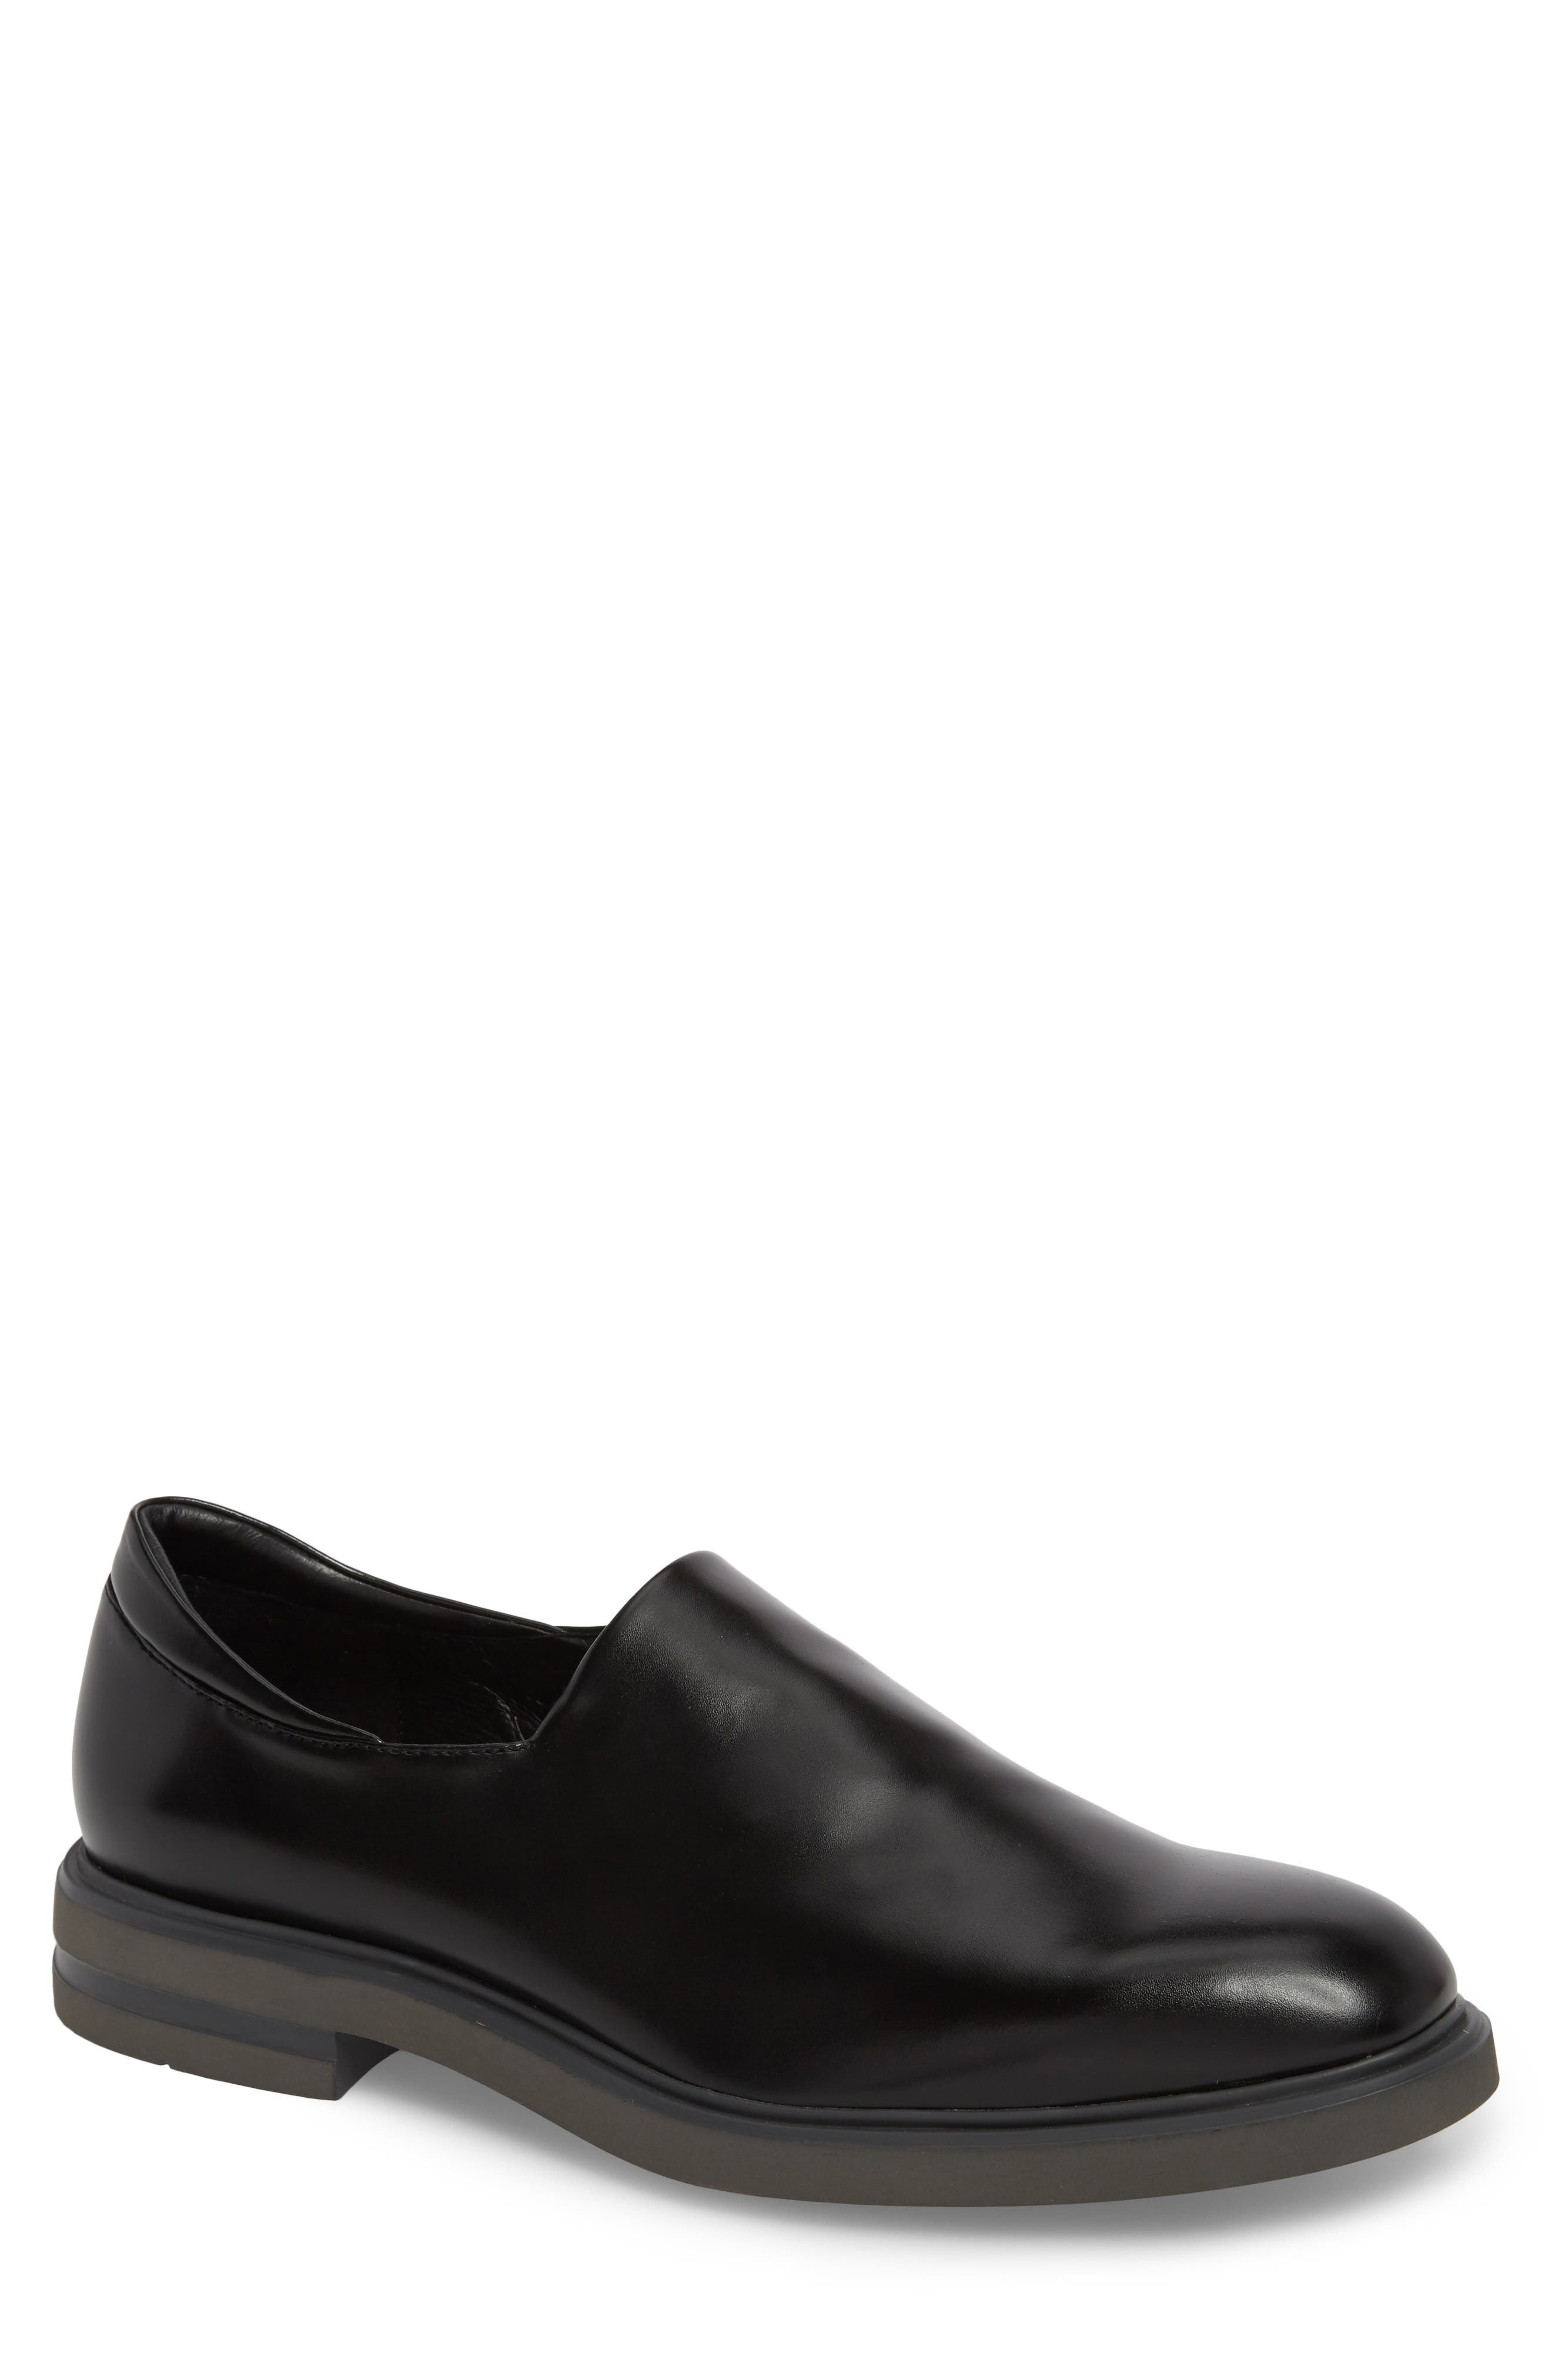 Eliam Venetian Loafer,                             Main thumbnail 1, color,                             Black Leather